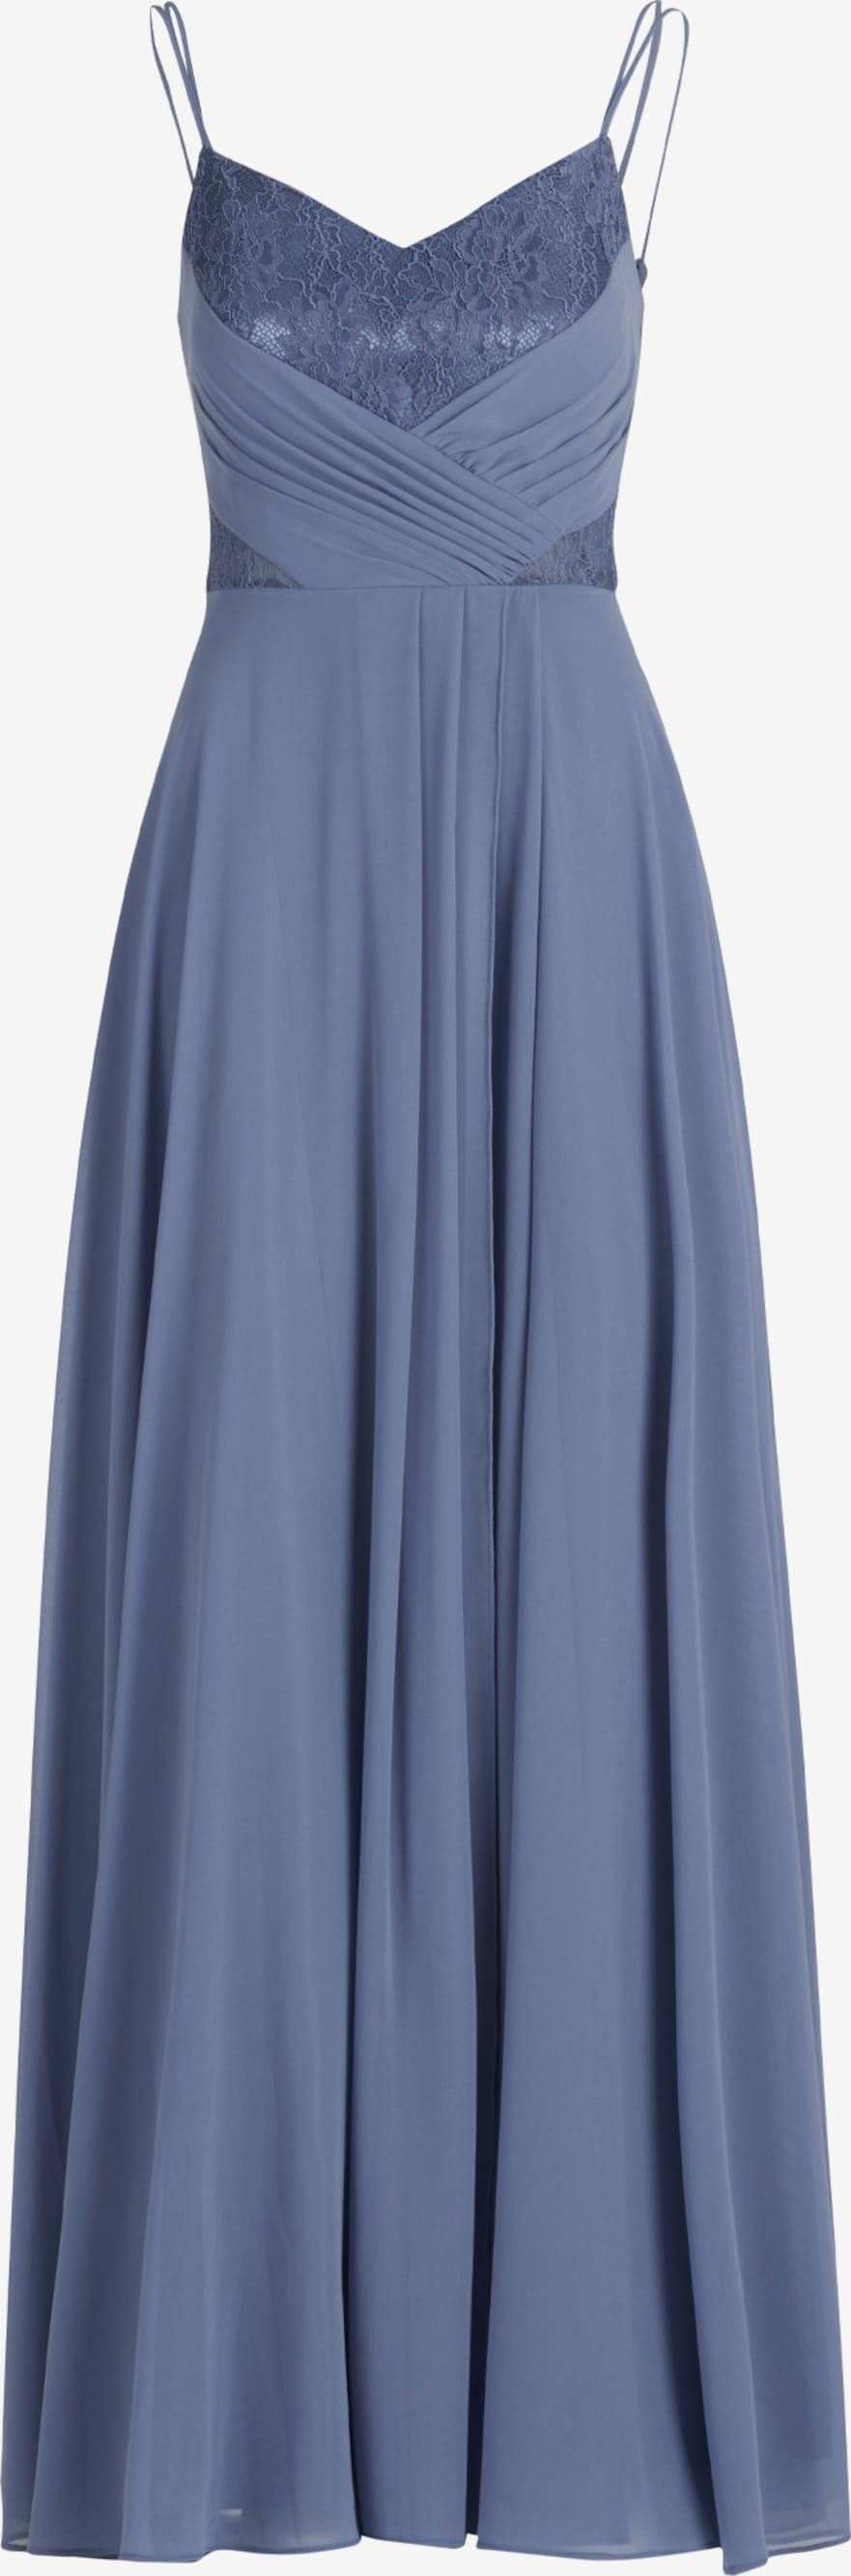 vera mont abendkleid in blau | about you in 2020